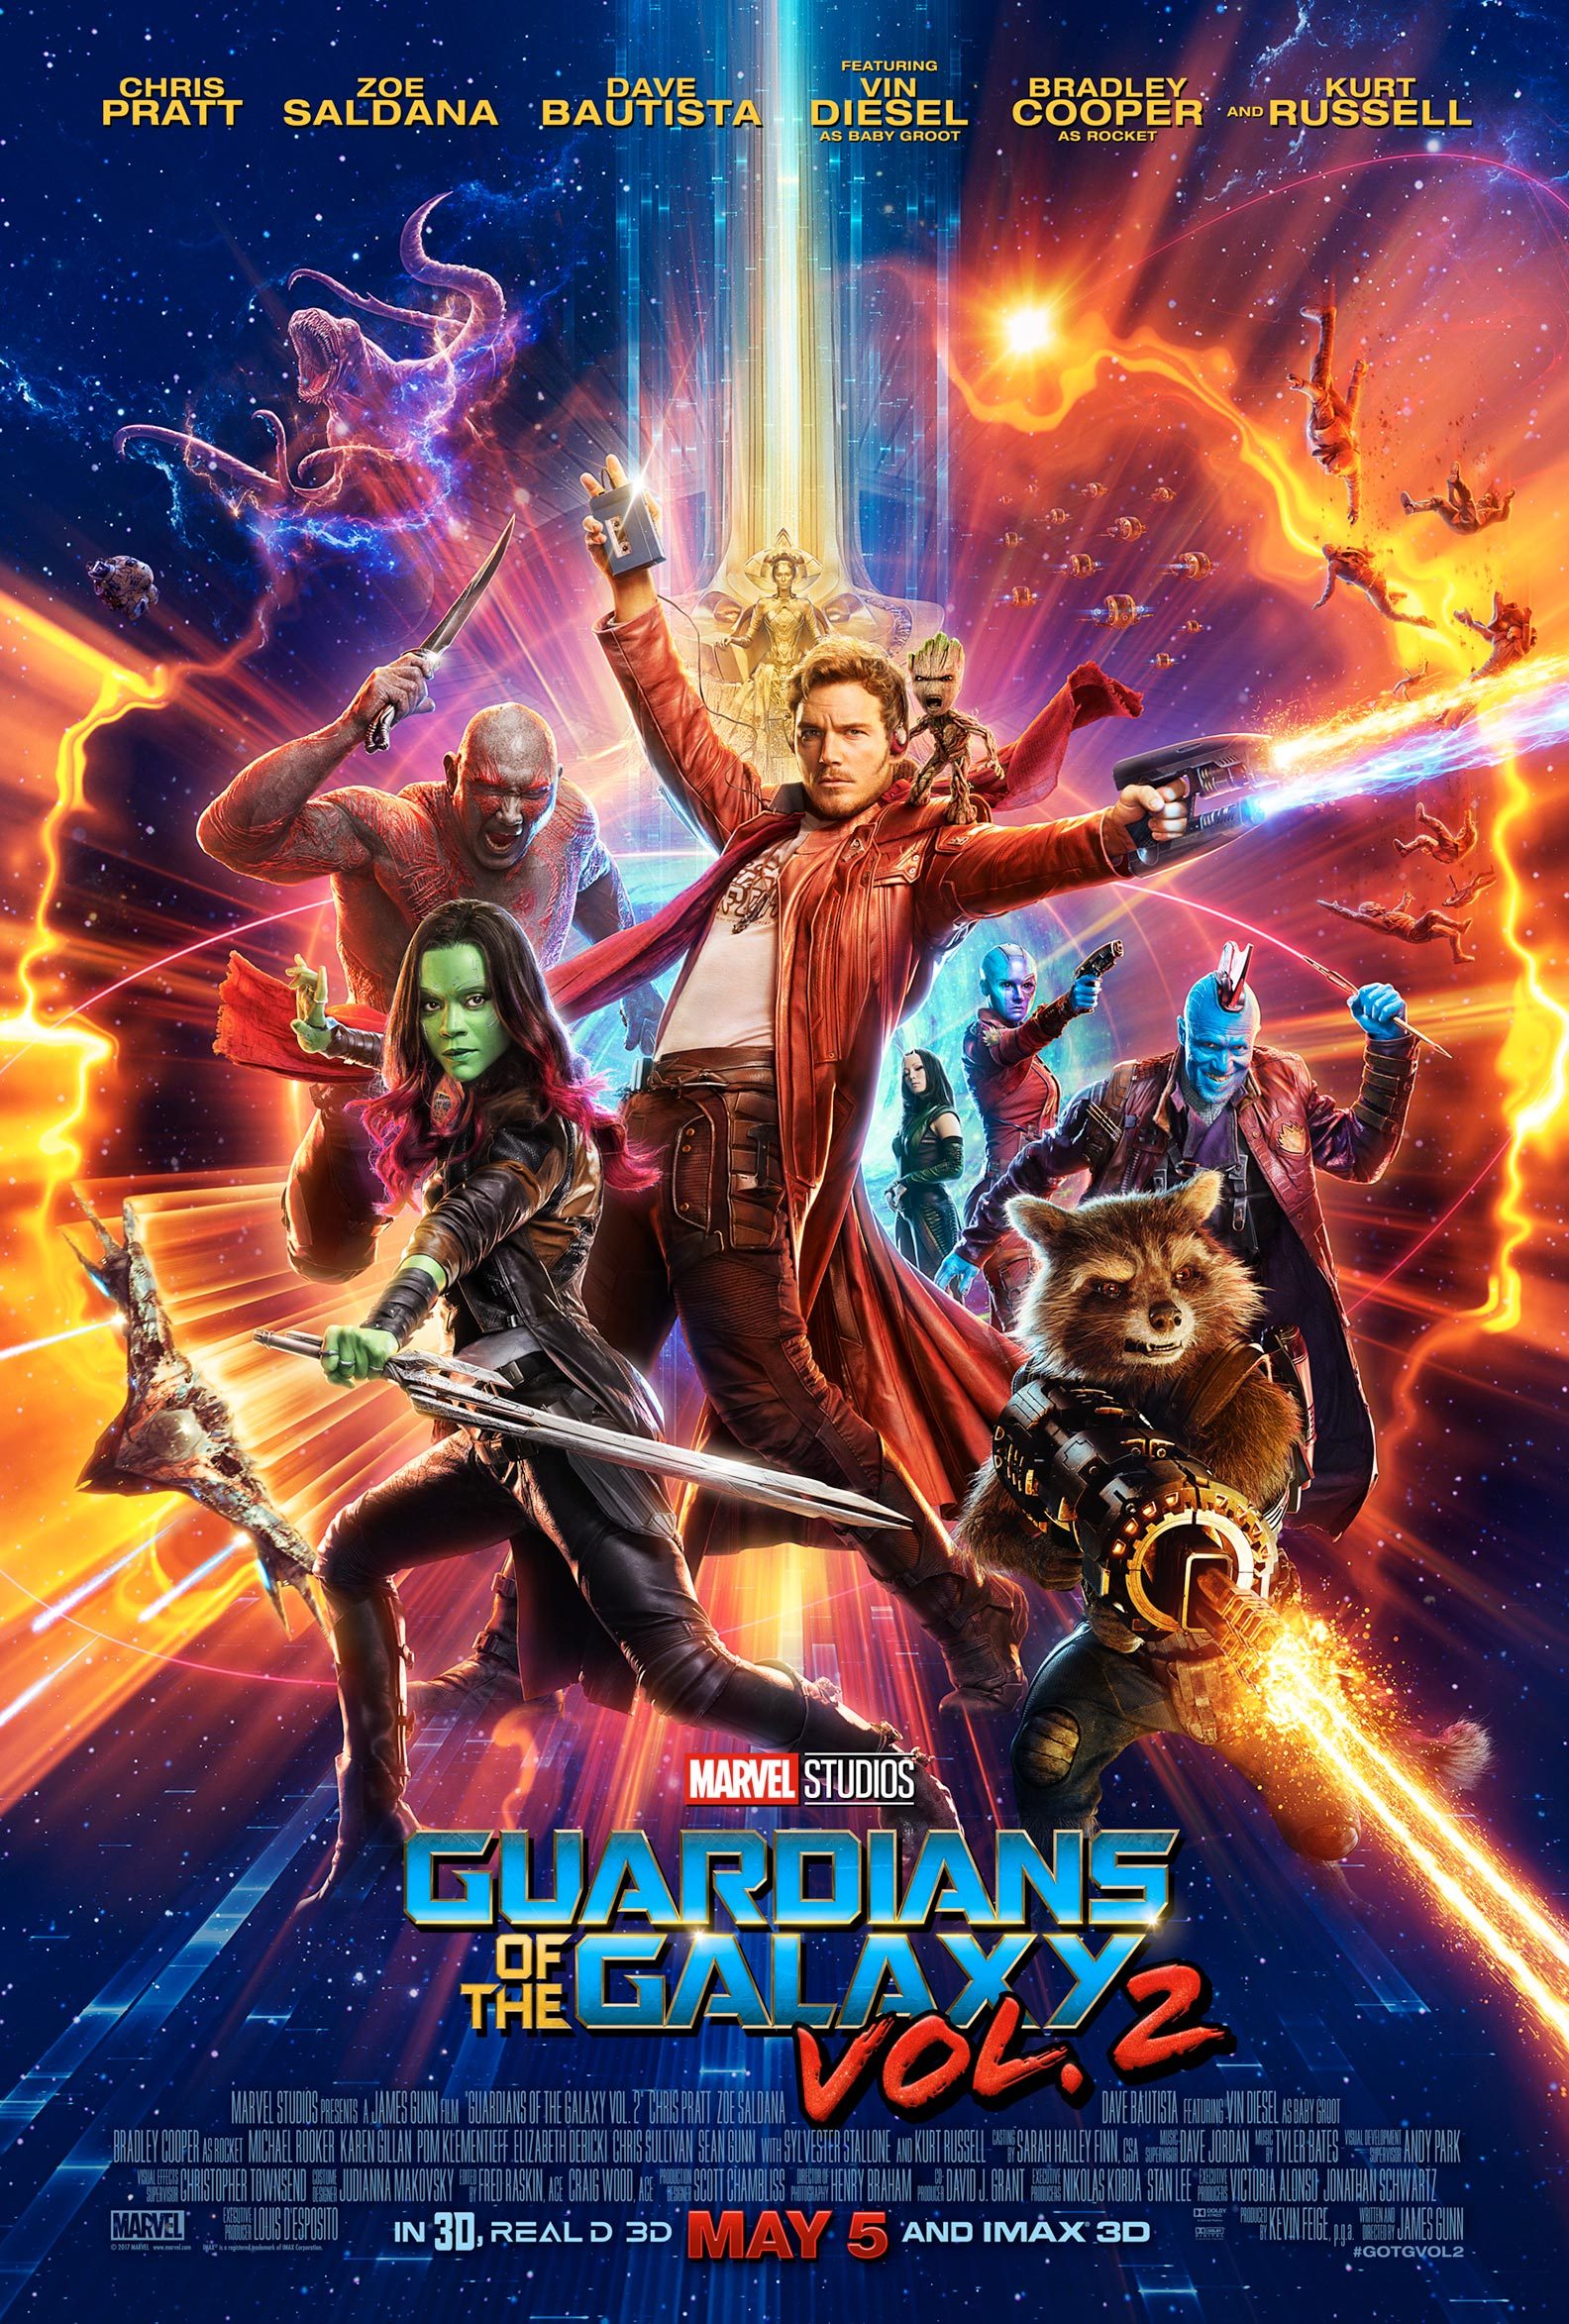 Image result for guardians of the galaxy 2 movie poster